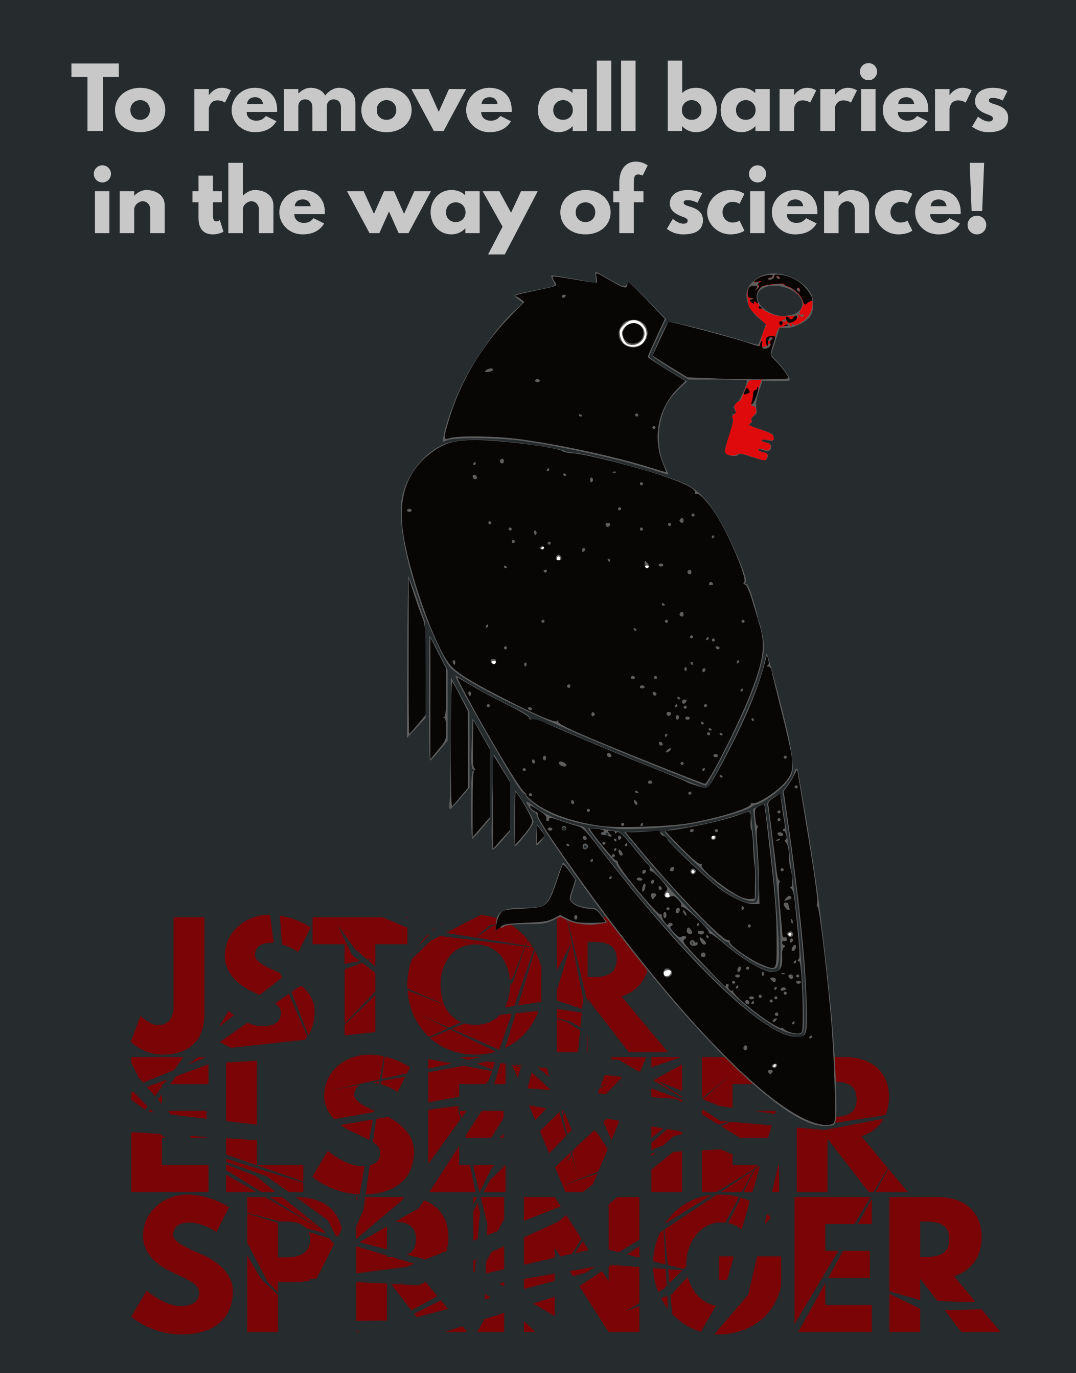 """Poster of the raven from the Sci-Hub logo perched atop the ruins of JSTOR, Elsevier and Springer tagged """"To remove all barriers in the way of science!"""""""